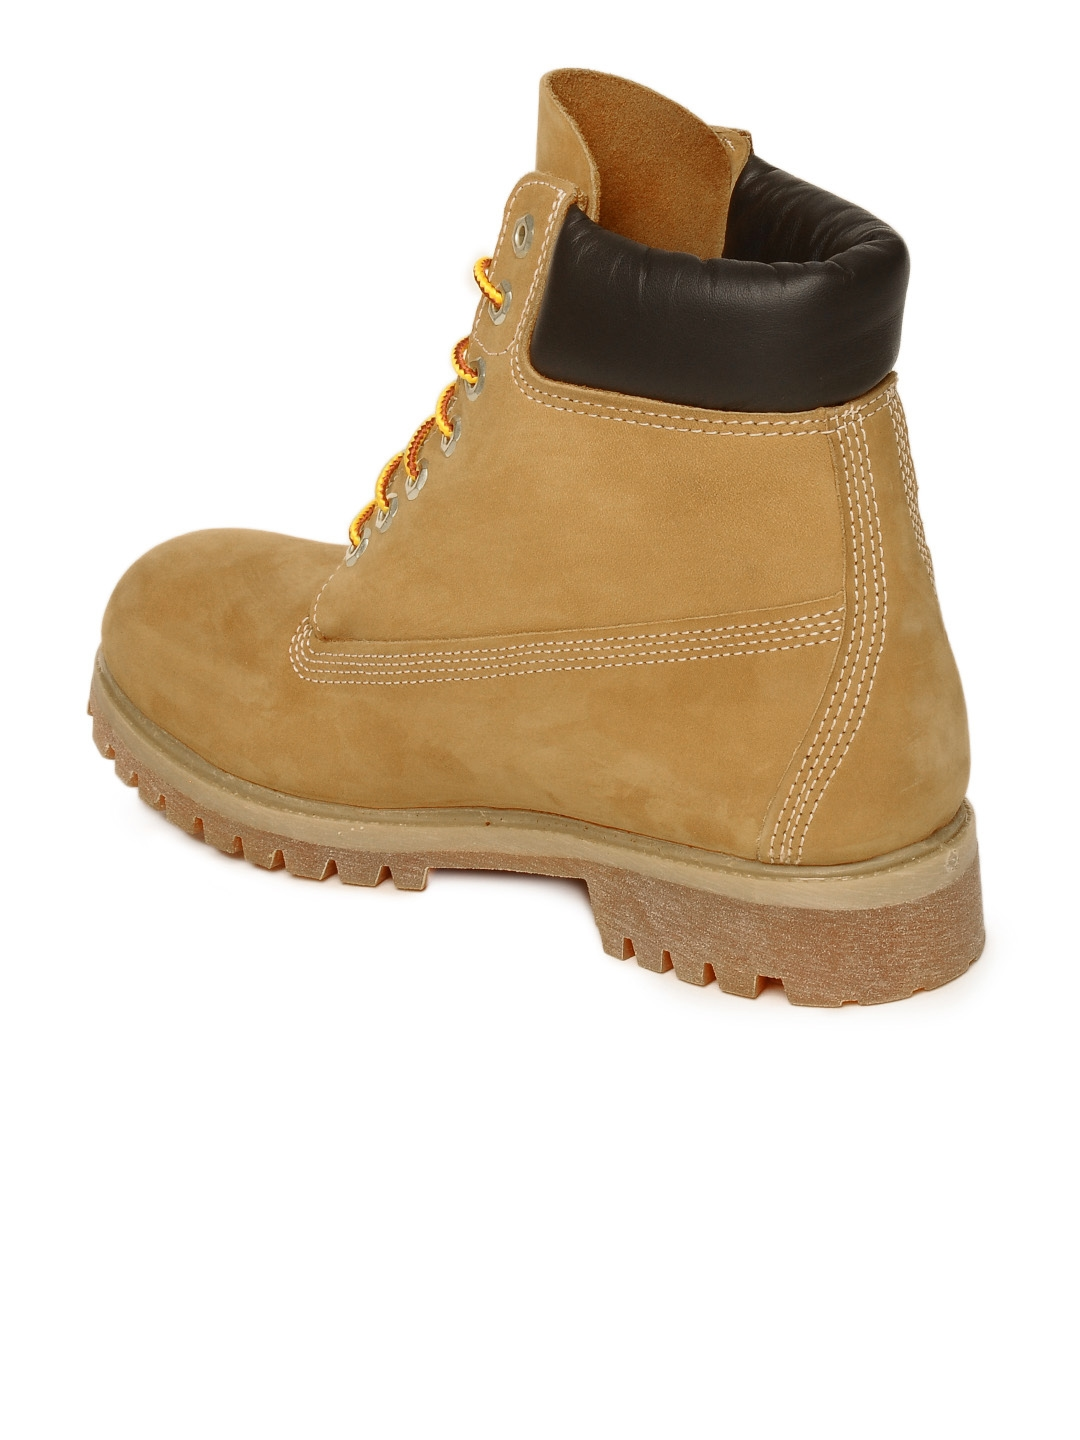 33cf57886e2 Buy Timberland Men 6 Inch Premium Yellow Boots - Casual Shoes for ...